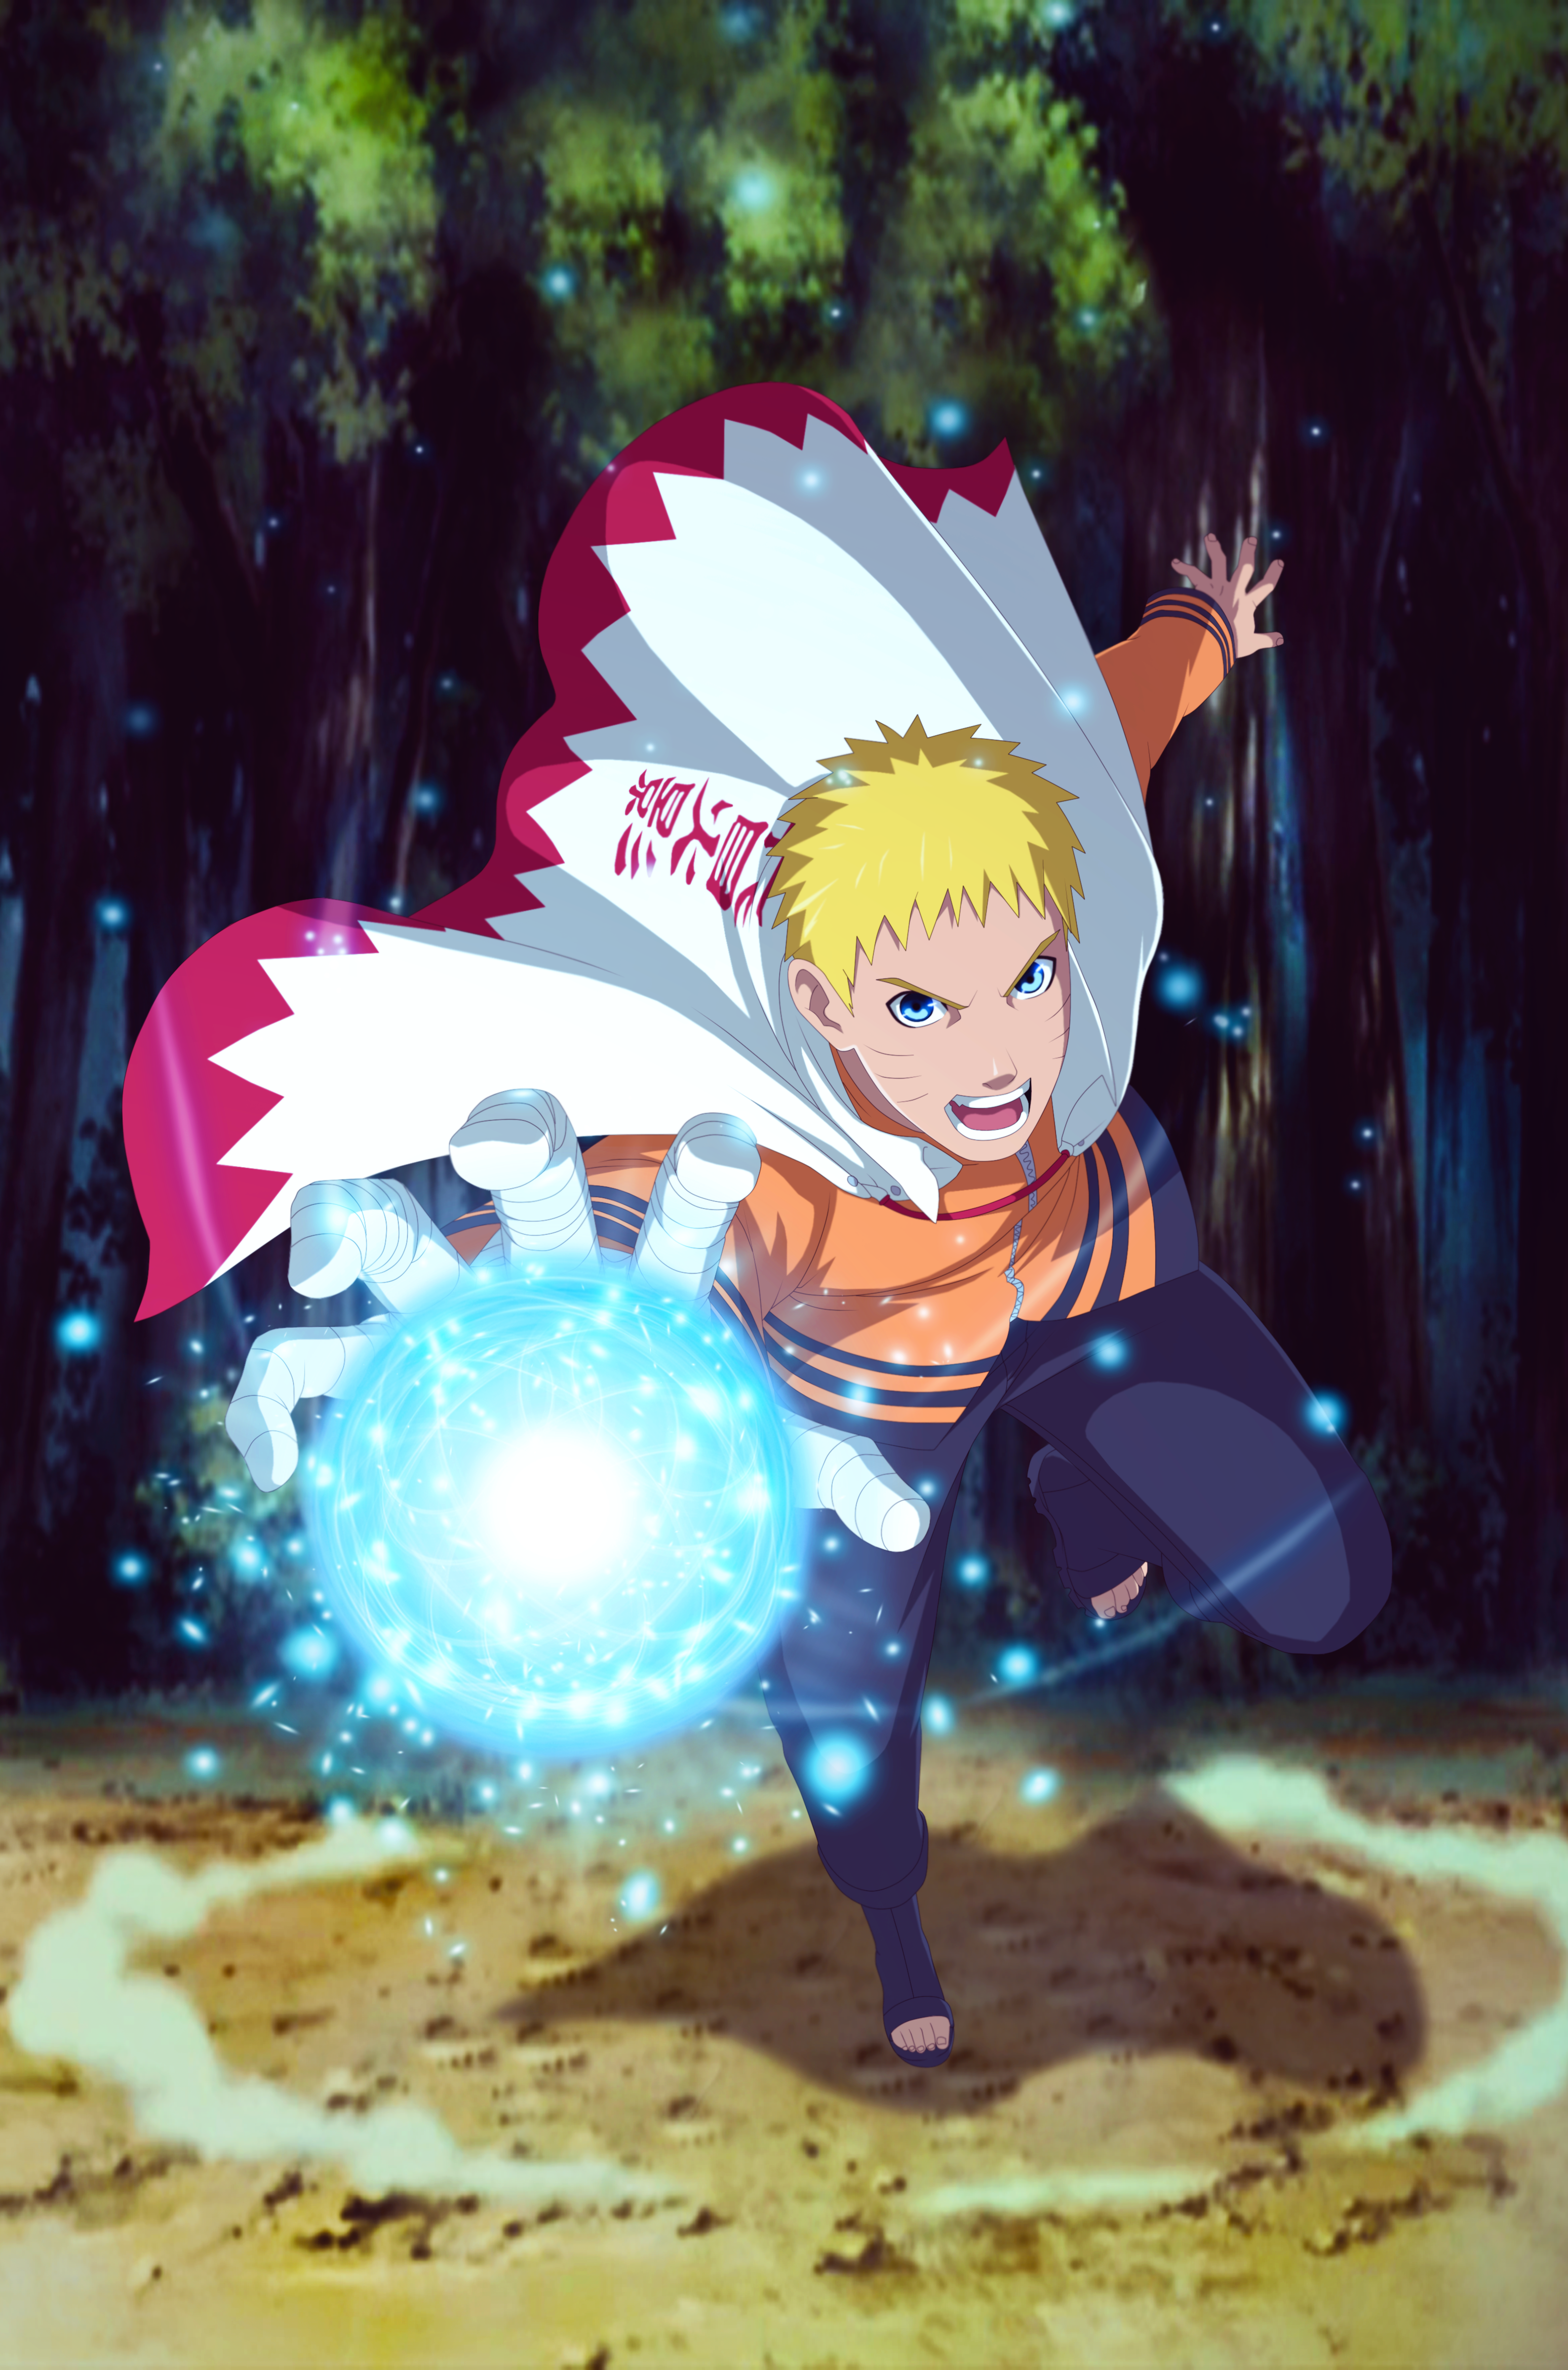 Naruto Hokage Anime Naruto Animes Wallpapers Anime